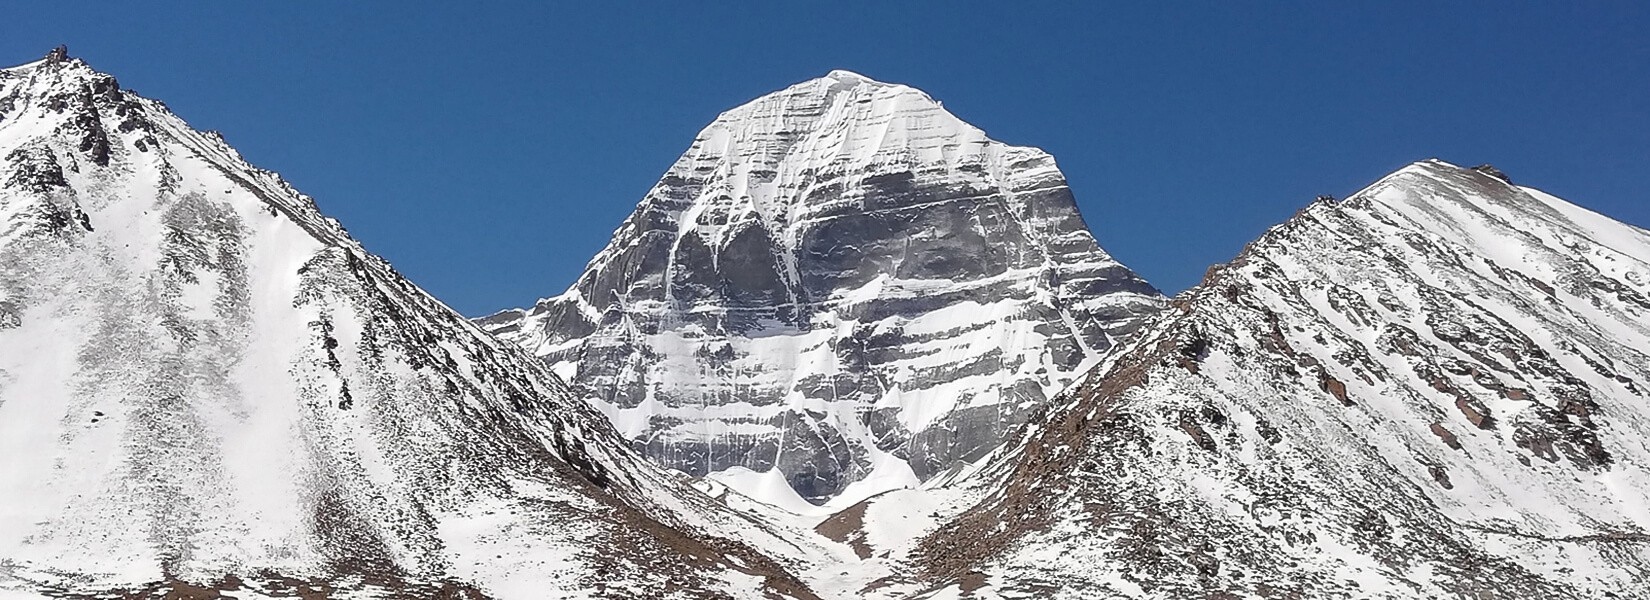 kailash tour in tibet